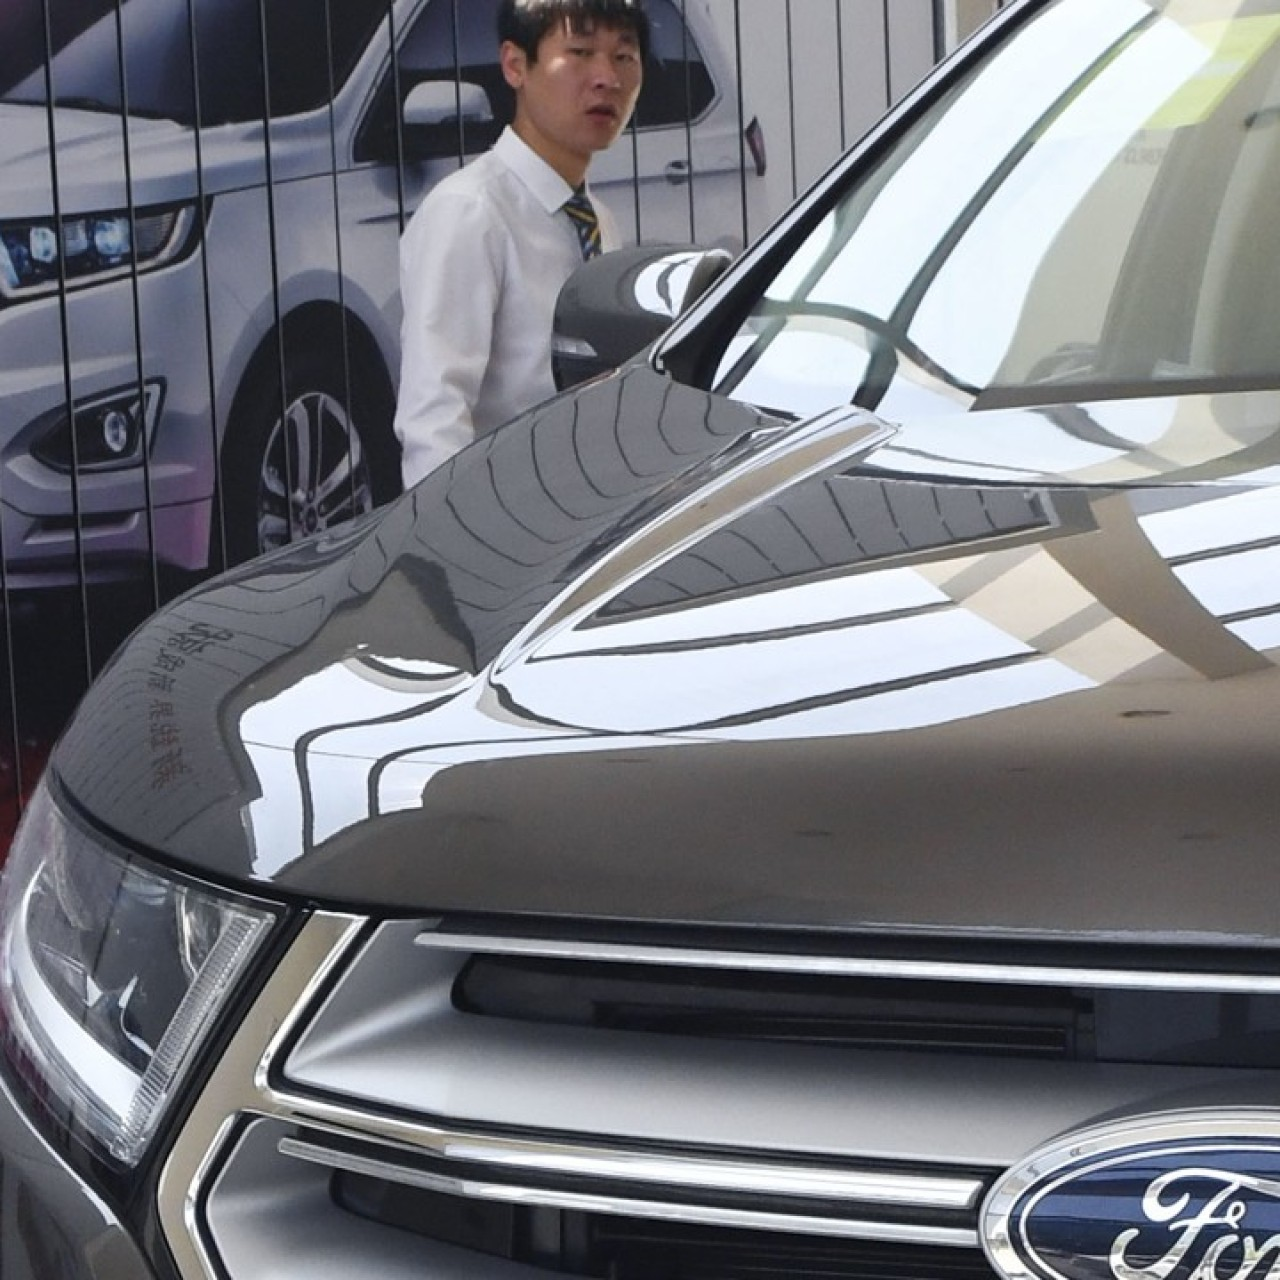 Ford kills plan to import Chinese-made car in wake of tariffs